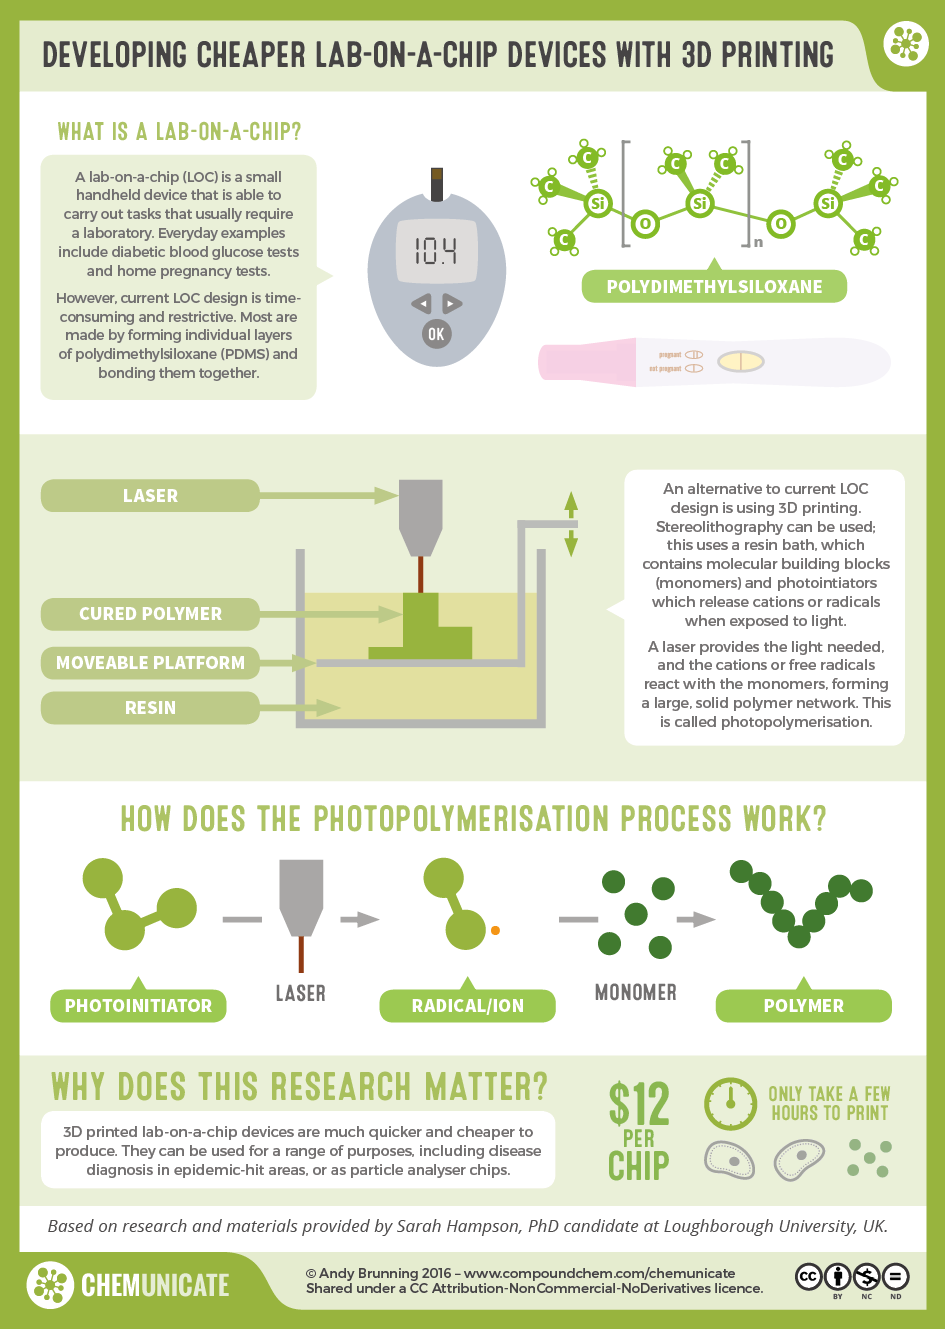 Compound Interest - RealTimeChem Week: Developing Cheaper Lab-on-a ...